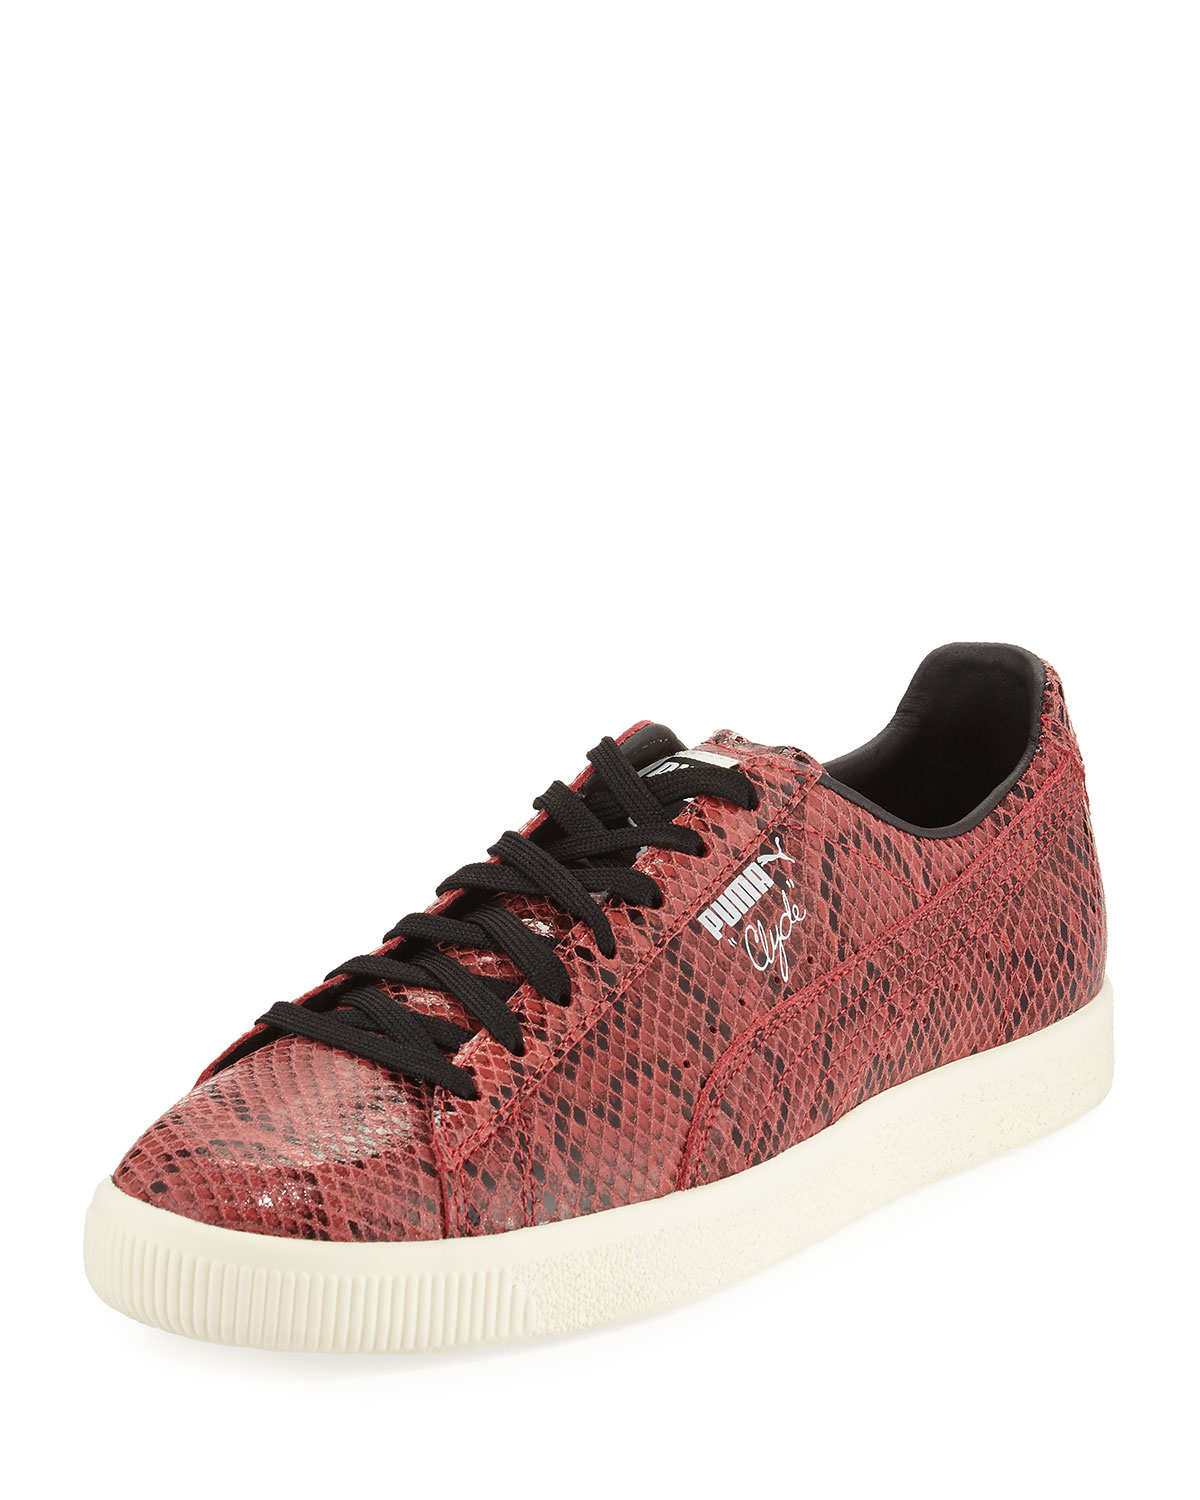 outlet store 11946 2a78e Men's Clyde Snakeskin-Embossed Leather Low-Top Sneaker, Red